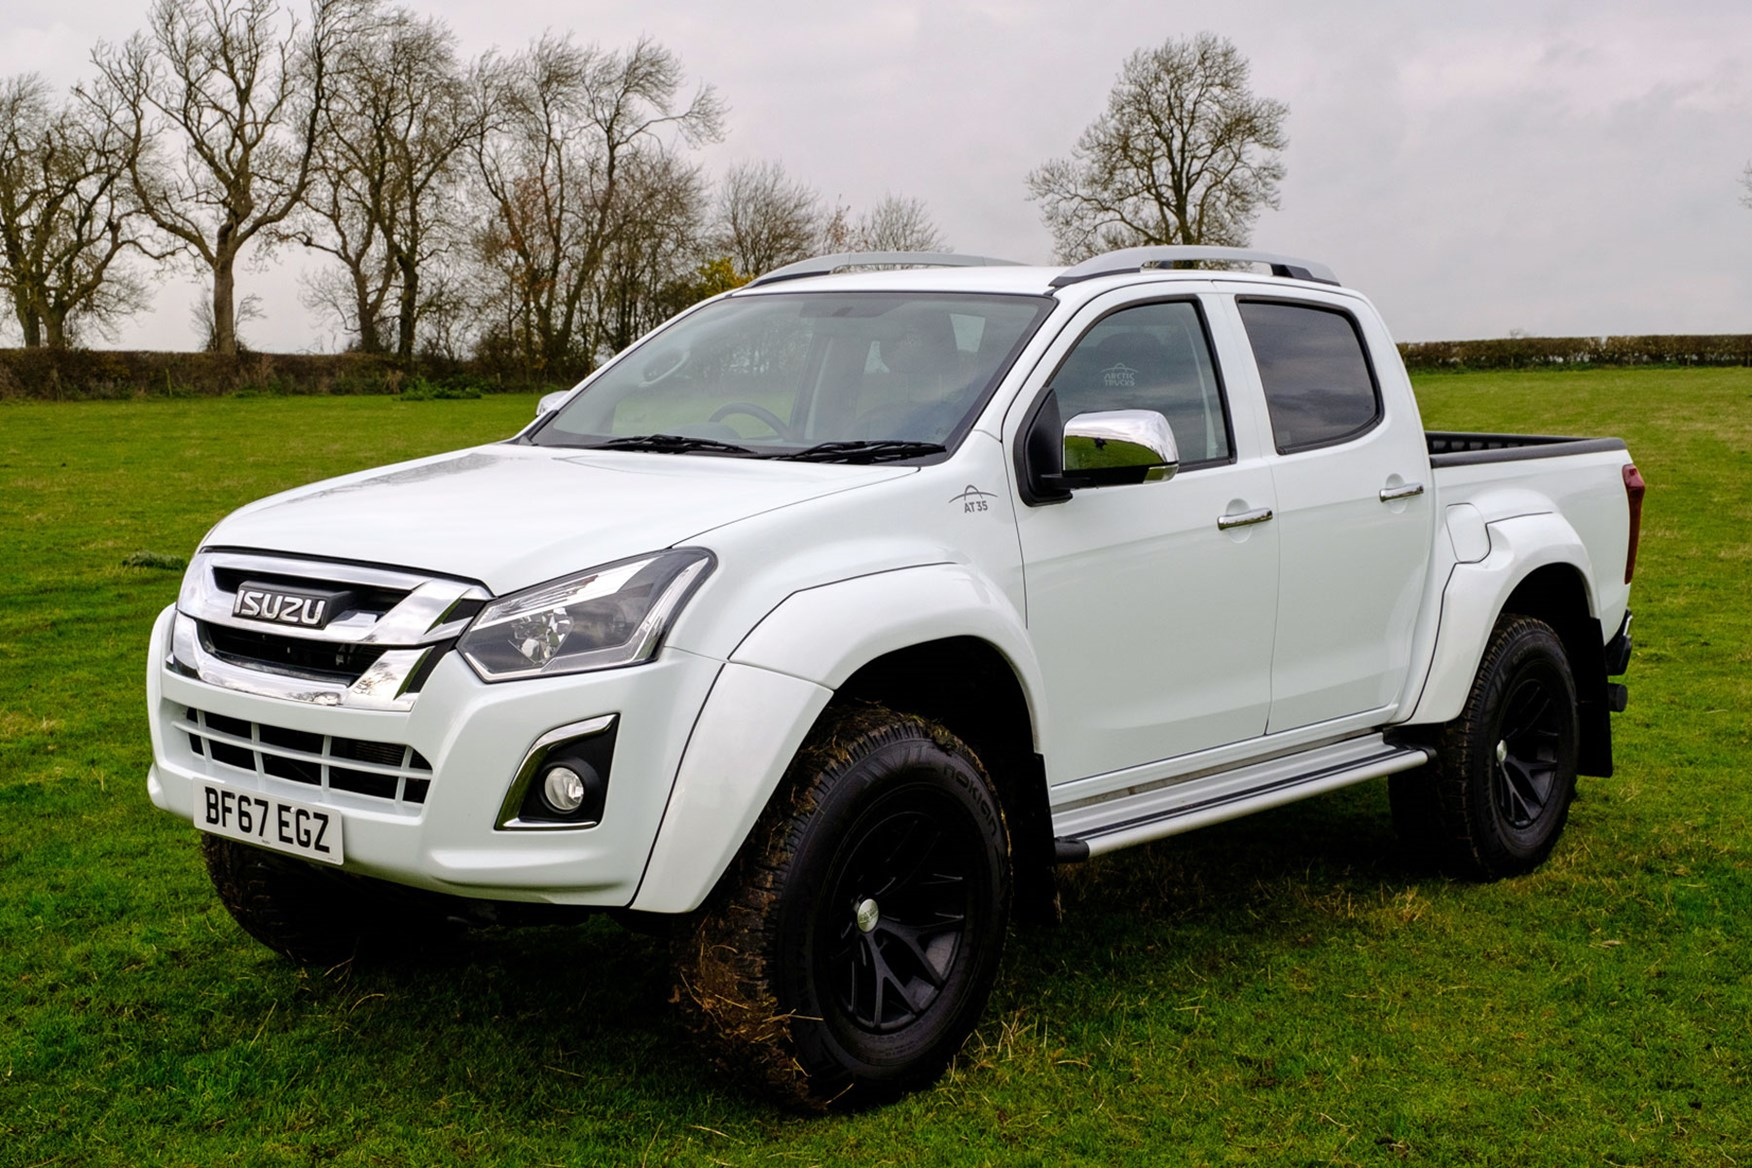 Isuzu D-Max AT35 1.9 review - front view, in field, white